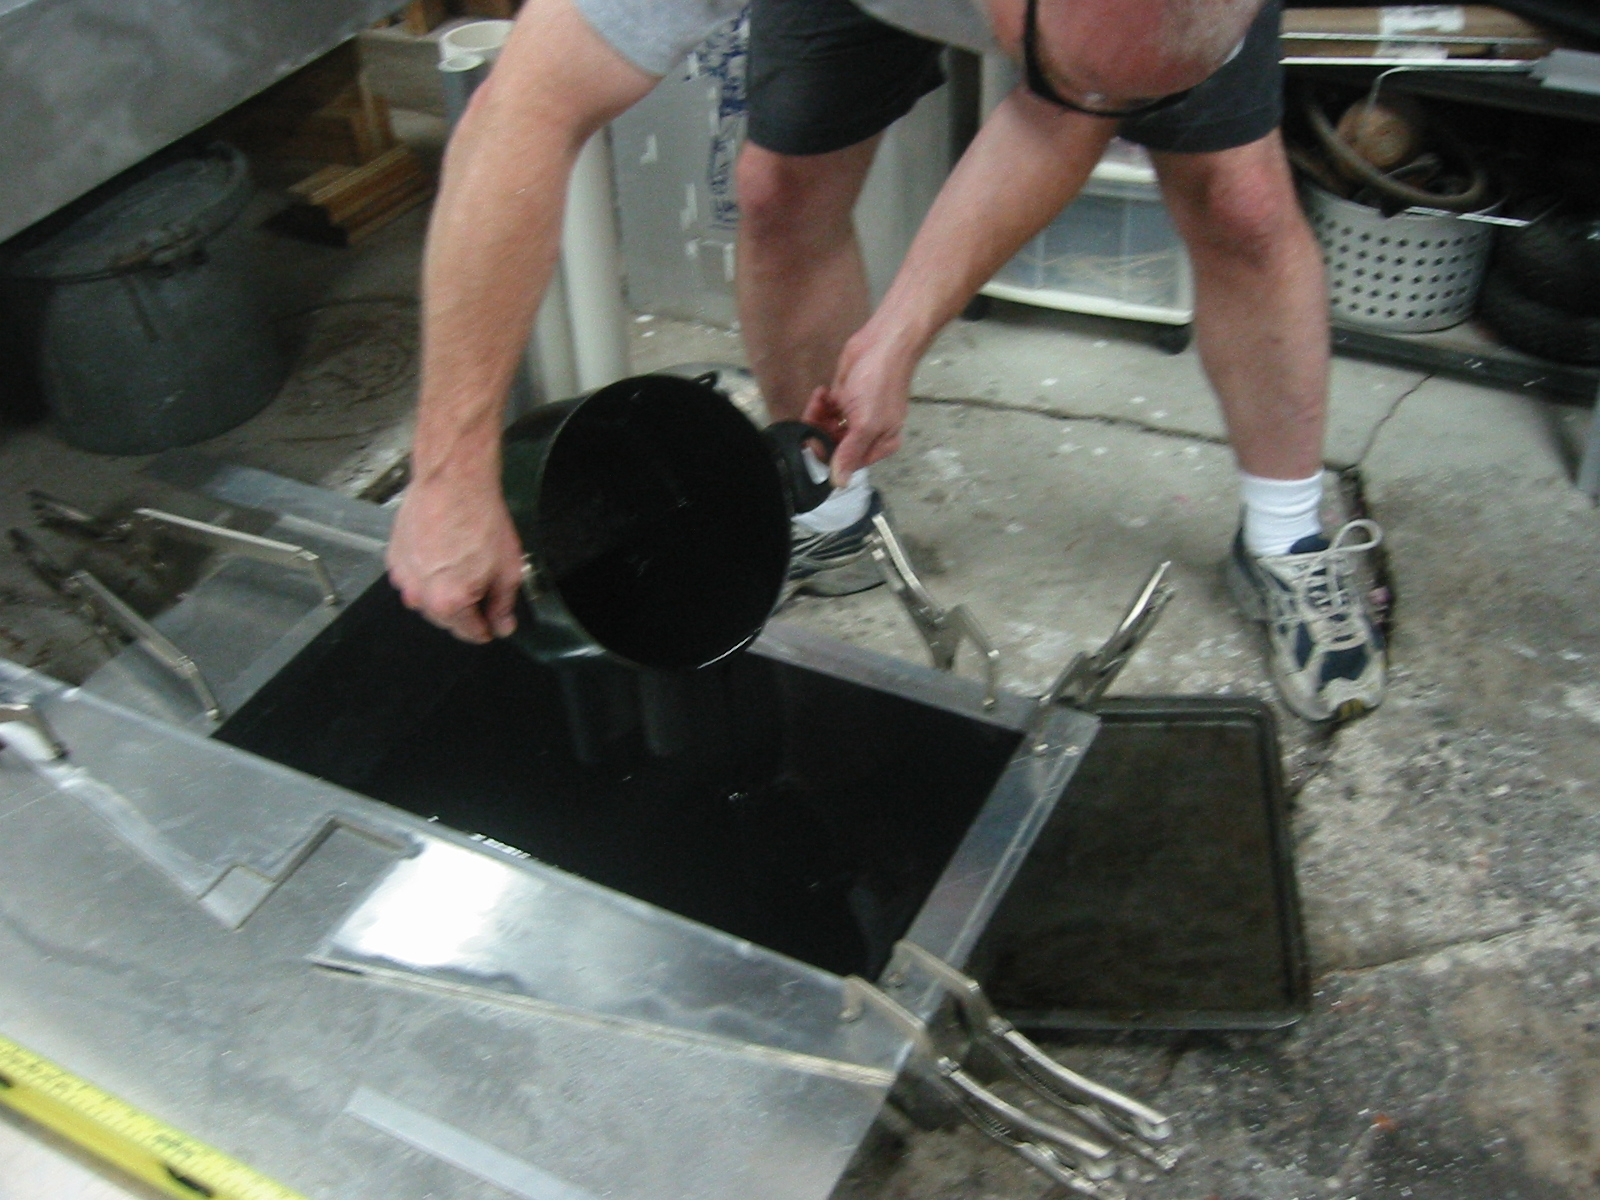 (2) Machineable wax being poured into the mold.